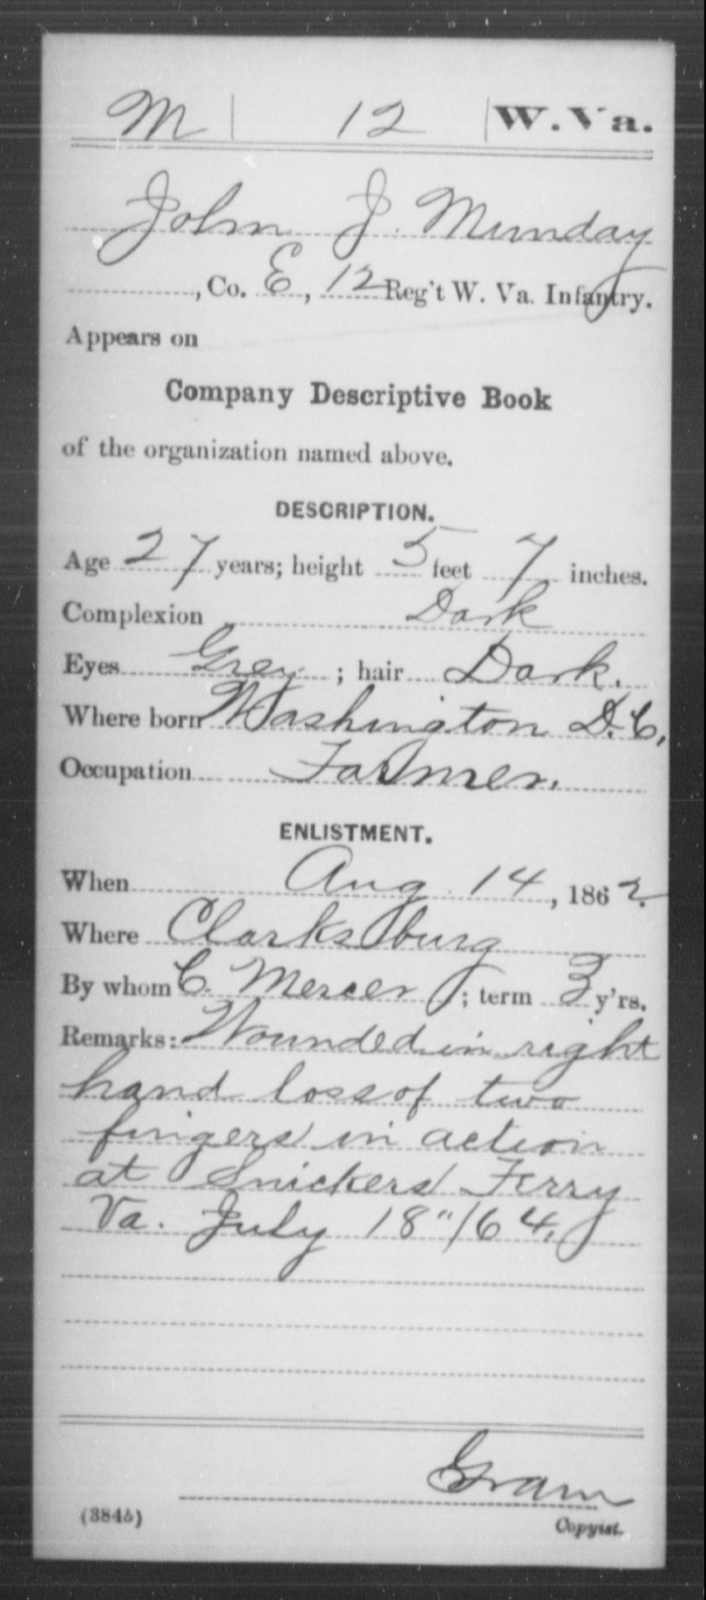 Munday, John J - Age 27, Year: 1862 - Miscellaneous Card Abstracts of Records - West Virginia